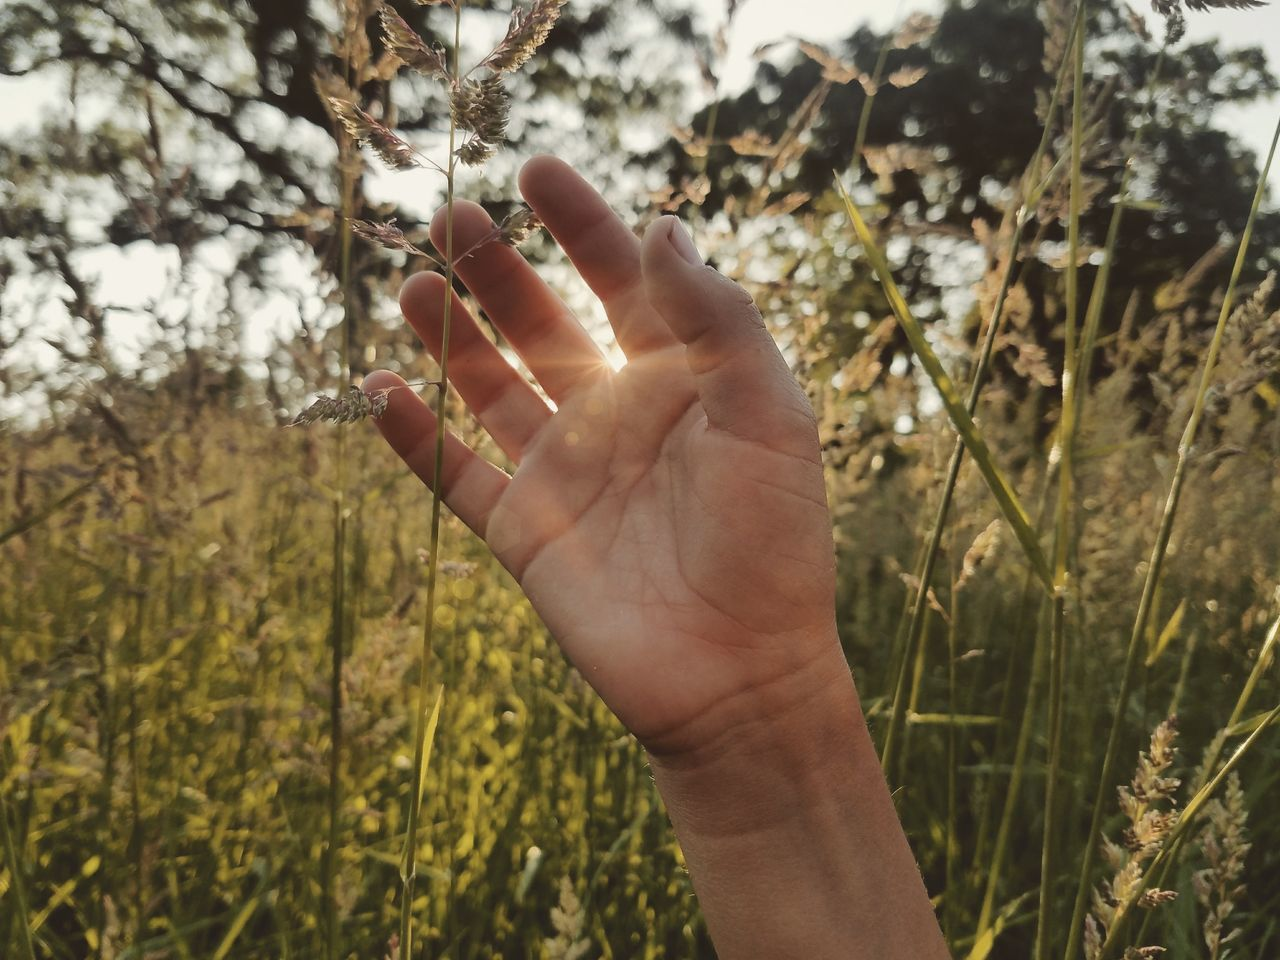 It's here, summer. Human Body Part Human Hand One Person Nature People Outdoors EyeEm EyeEm Best Shots Full Frame Getting Inspired Android Photography Samsung Galaxy S7 Edge Light Sommergefühle